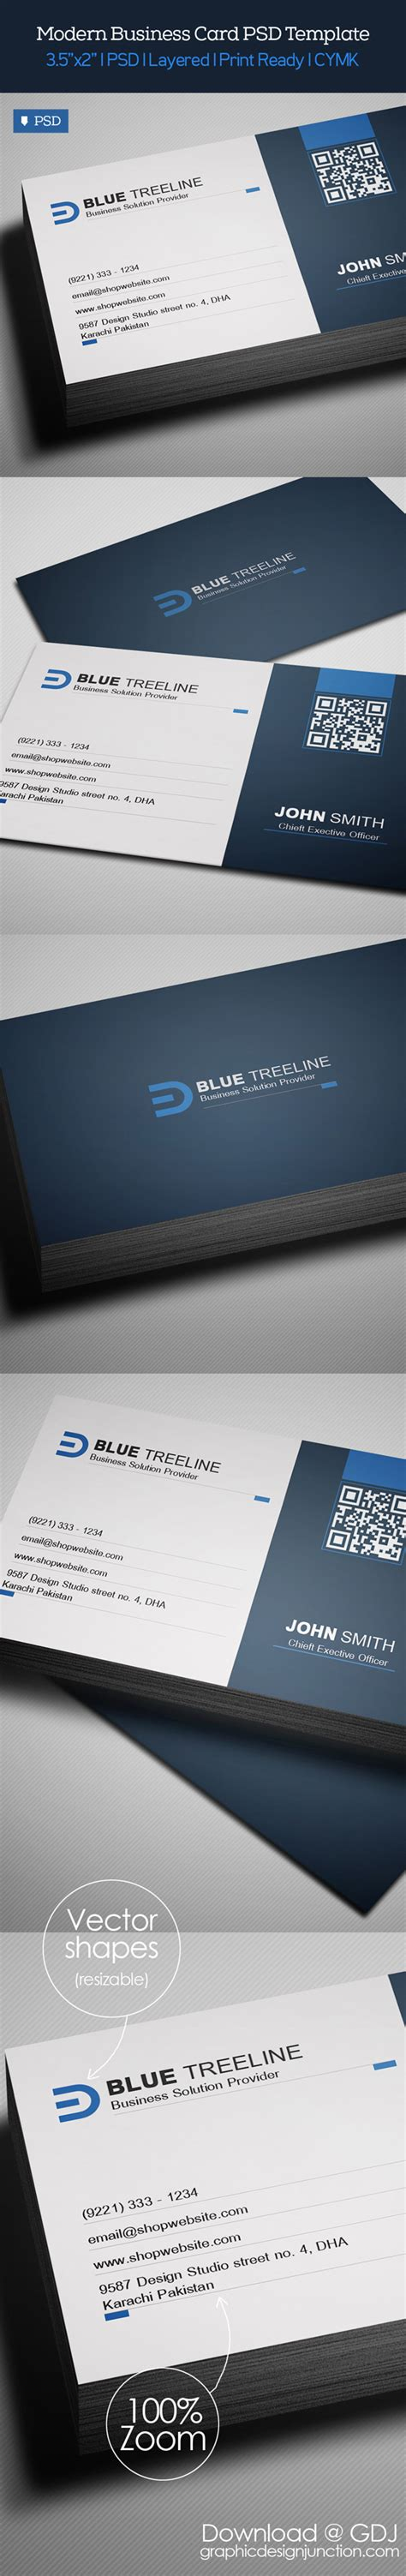 business card template graphic design freebie freebies highest quality business card templates psd